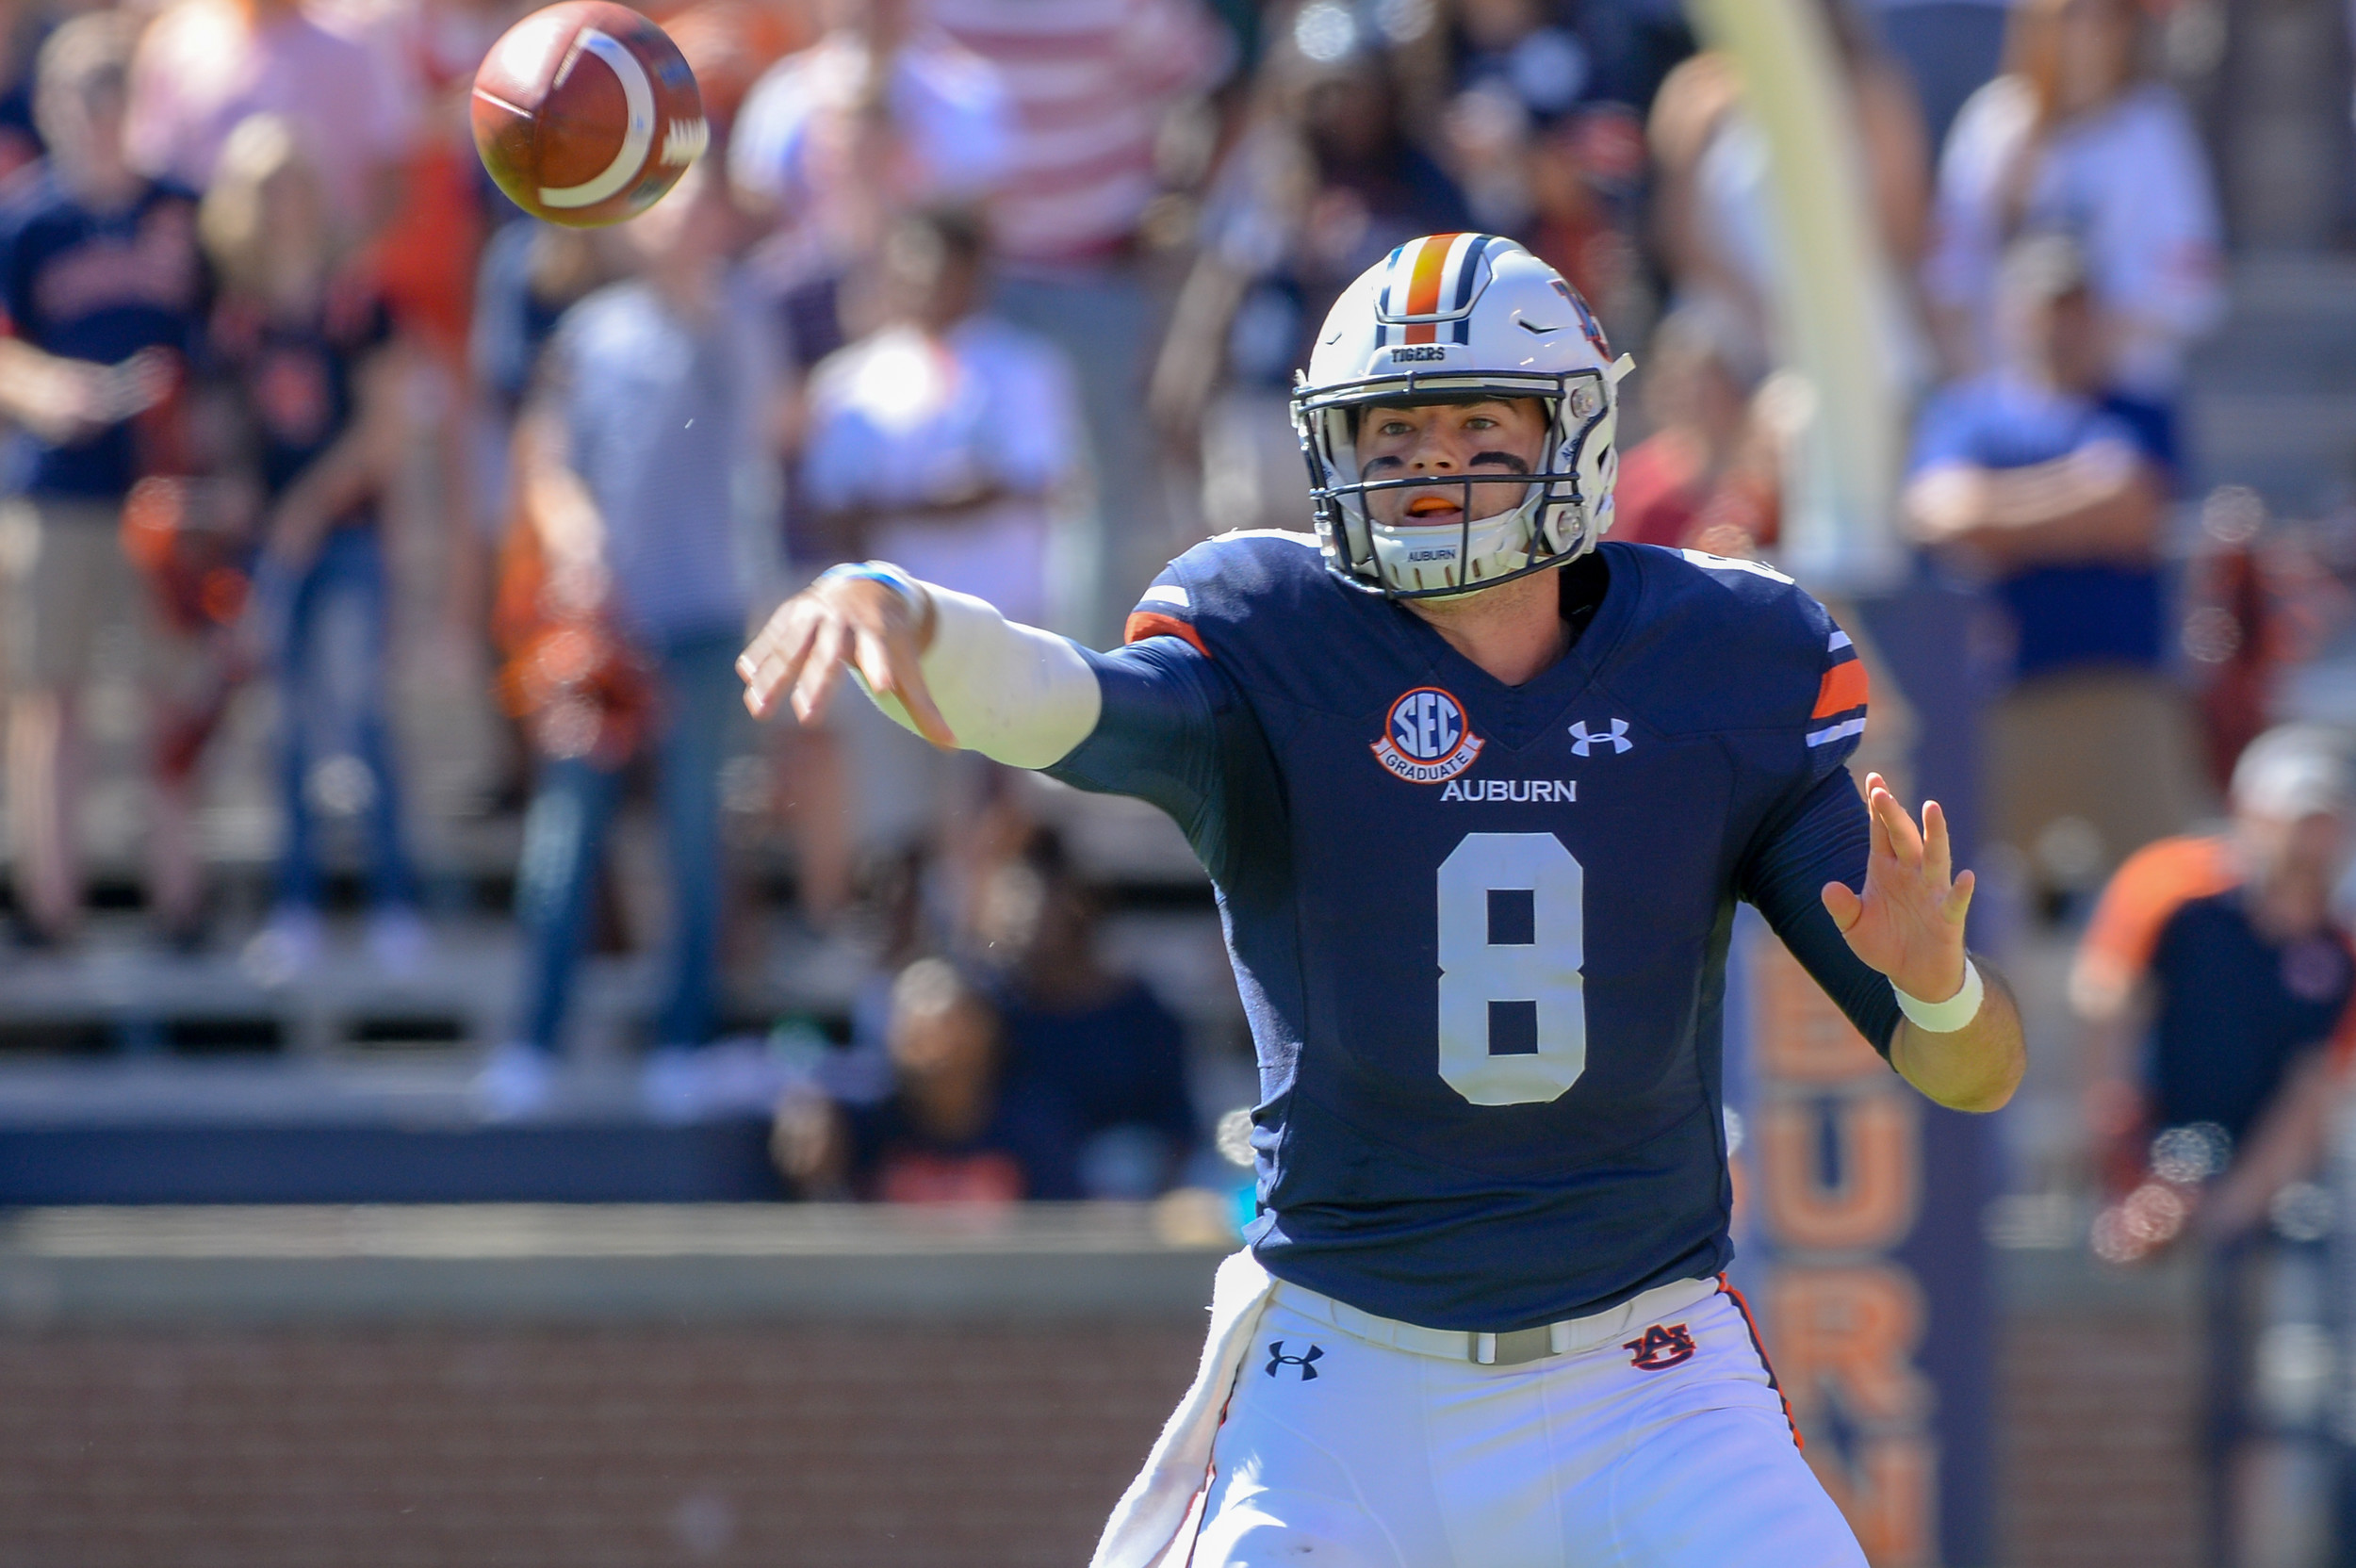 Auburn Tigers quarterback Jarrett Stidham (8) throws during the first half of Saturday's game, at Jordan-Hare Stadium in Auburn, AL. Daily Mountain Eagle -  Jeff Johnsey